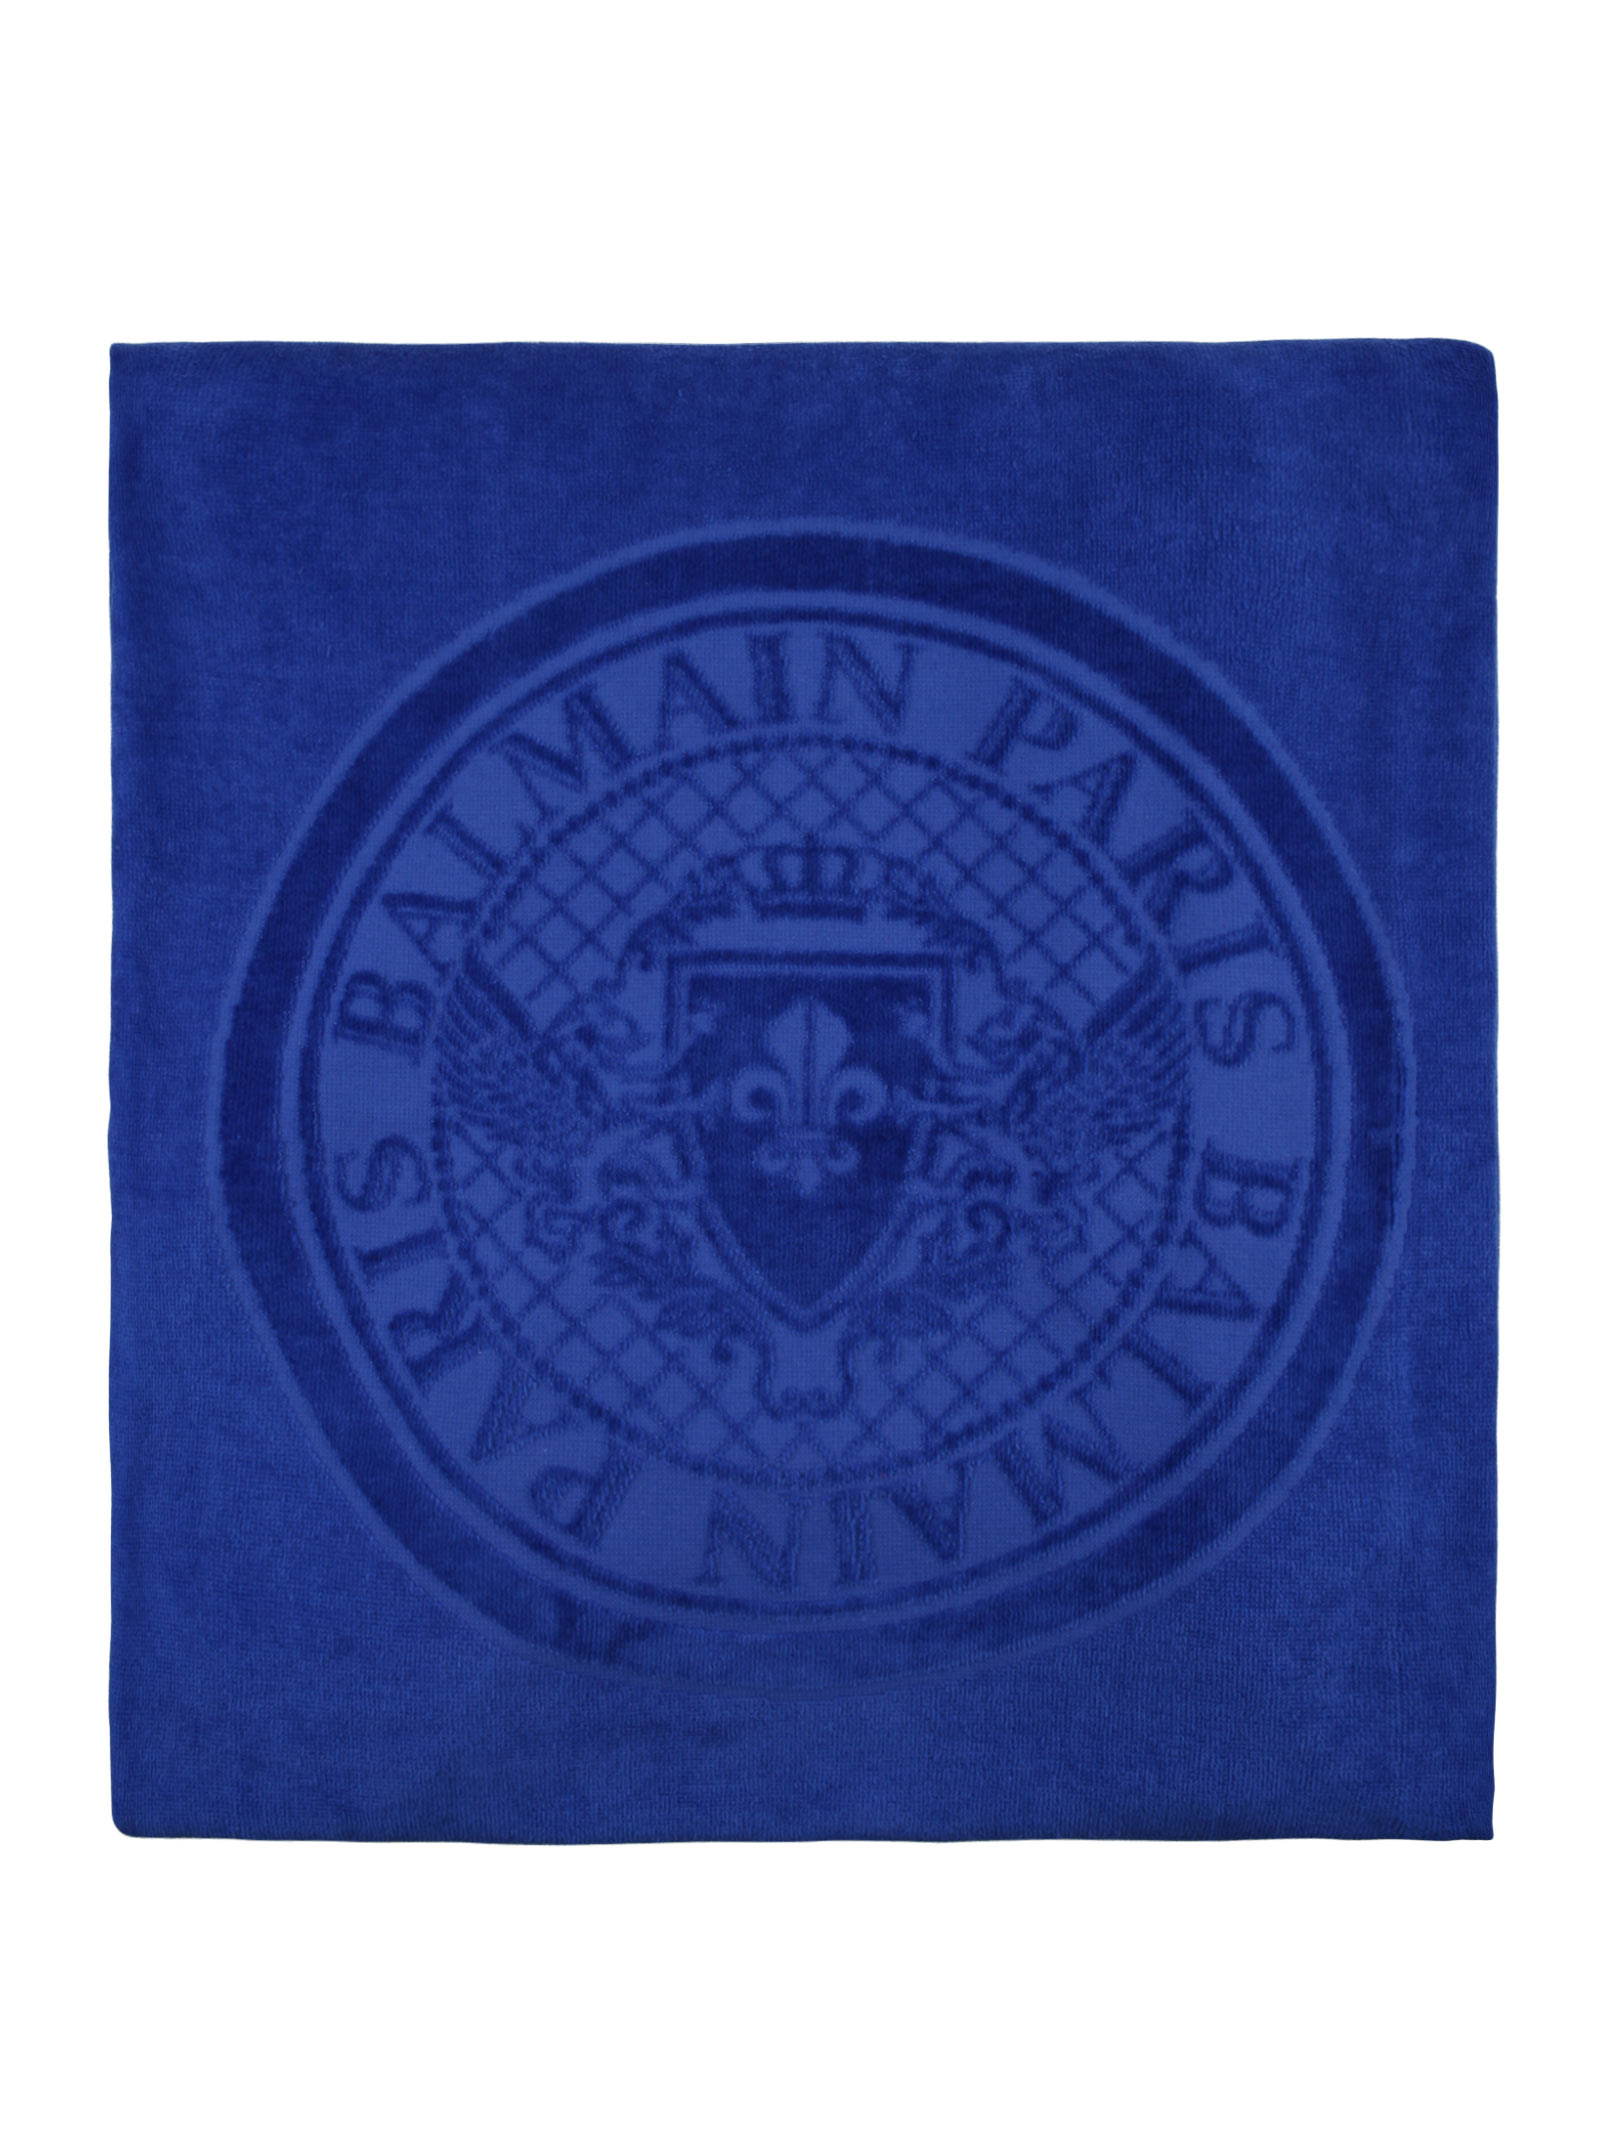 5c215ab32 Balmain Paris Kids towel - BALMAIN PARIS KIDS - Michele Franzese Moda